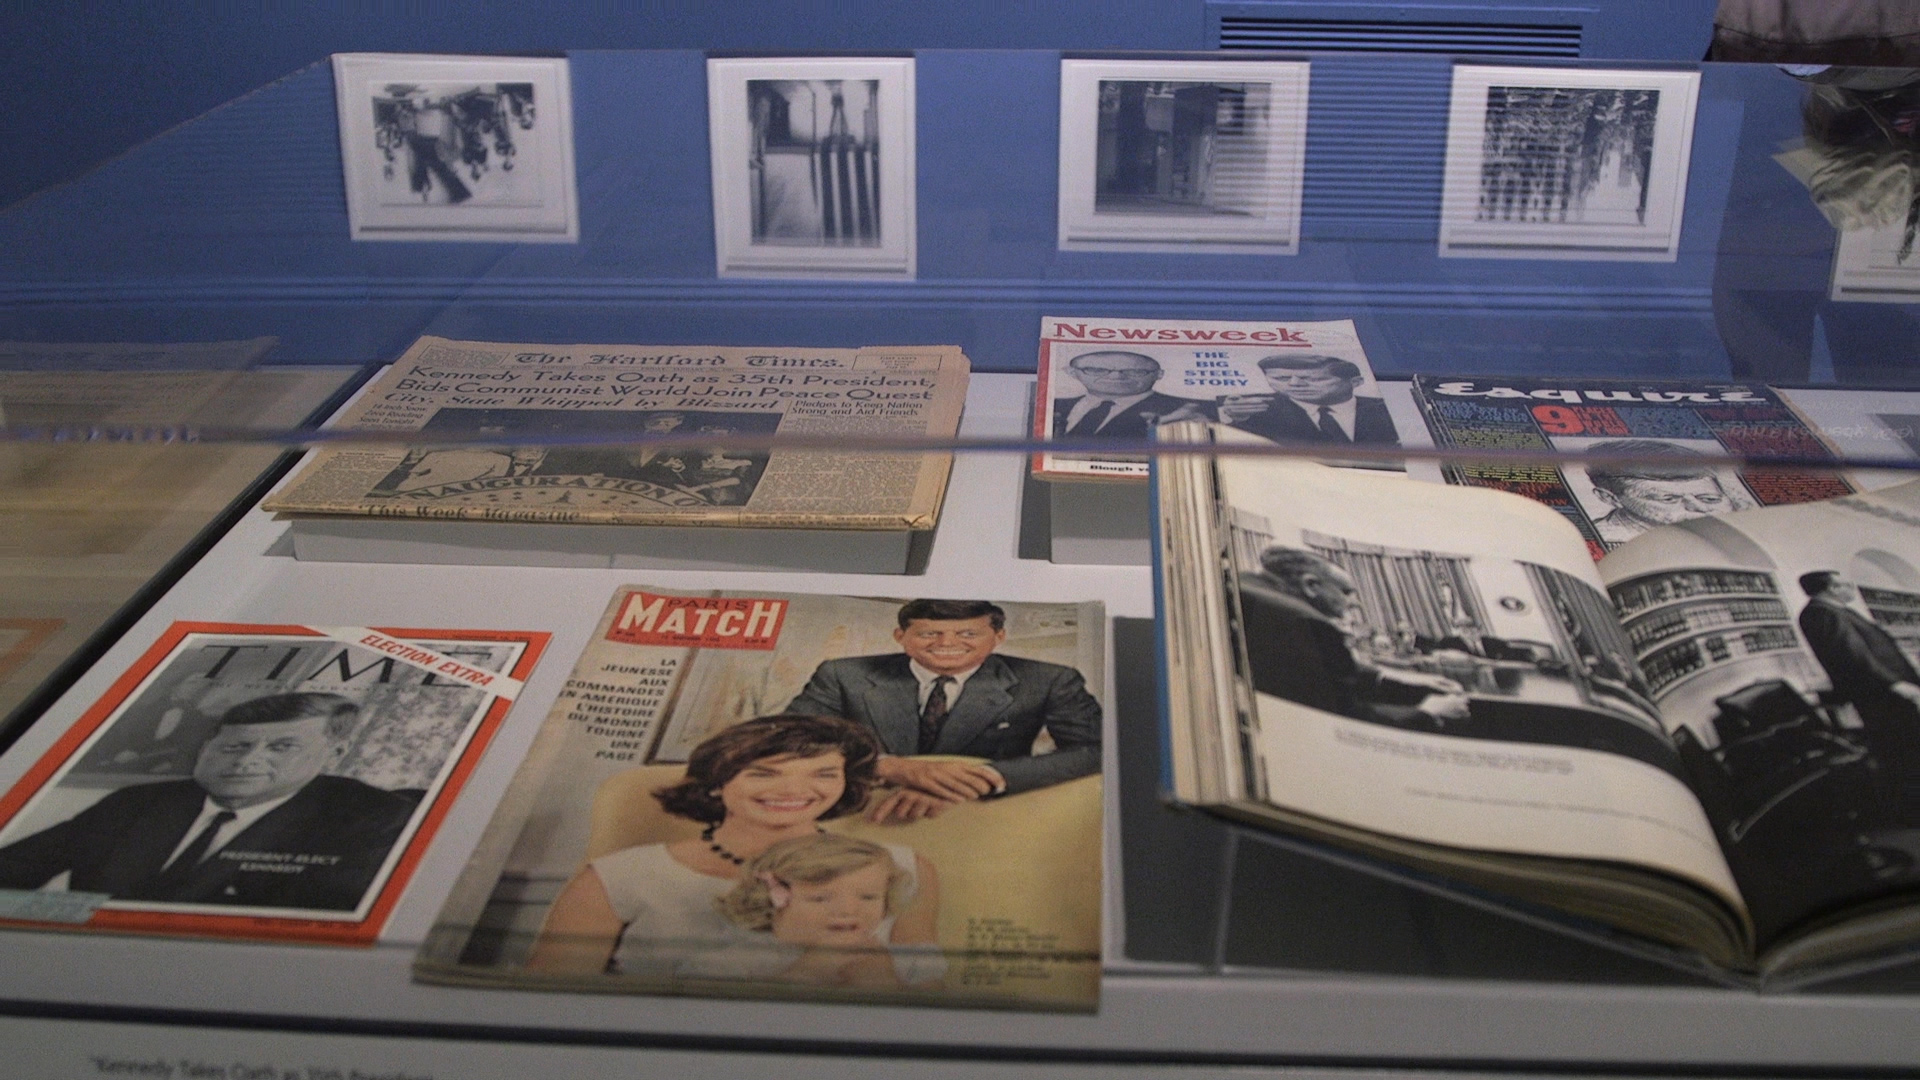 A collection of memorabilia illustrating the life of President John F. Kennedy is on exhibit at the Smithsonian American Art Museum through September. (Thomas McKinless/CQ Roll Call file photo)